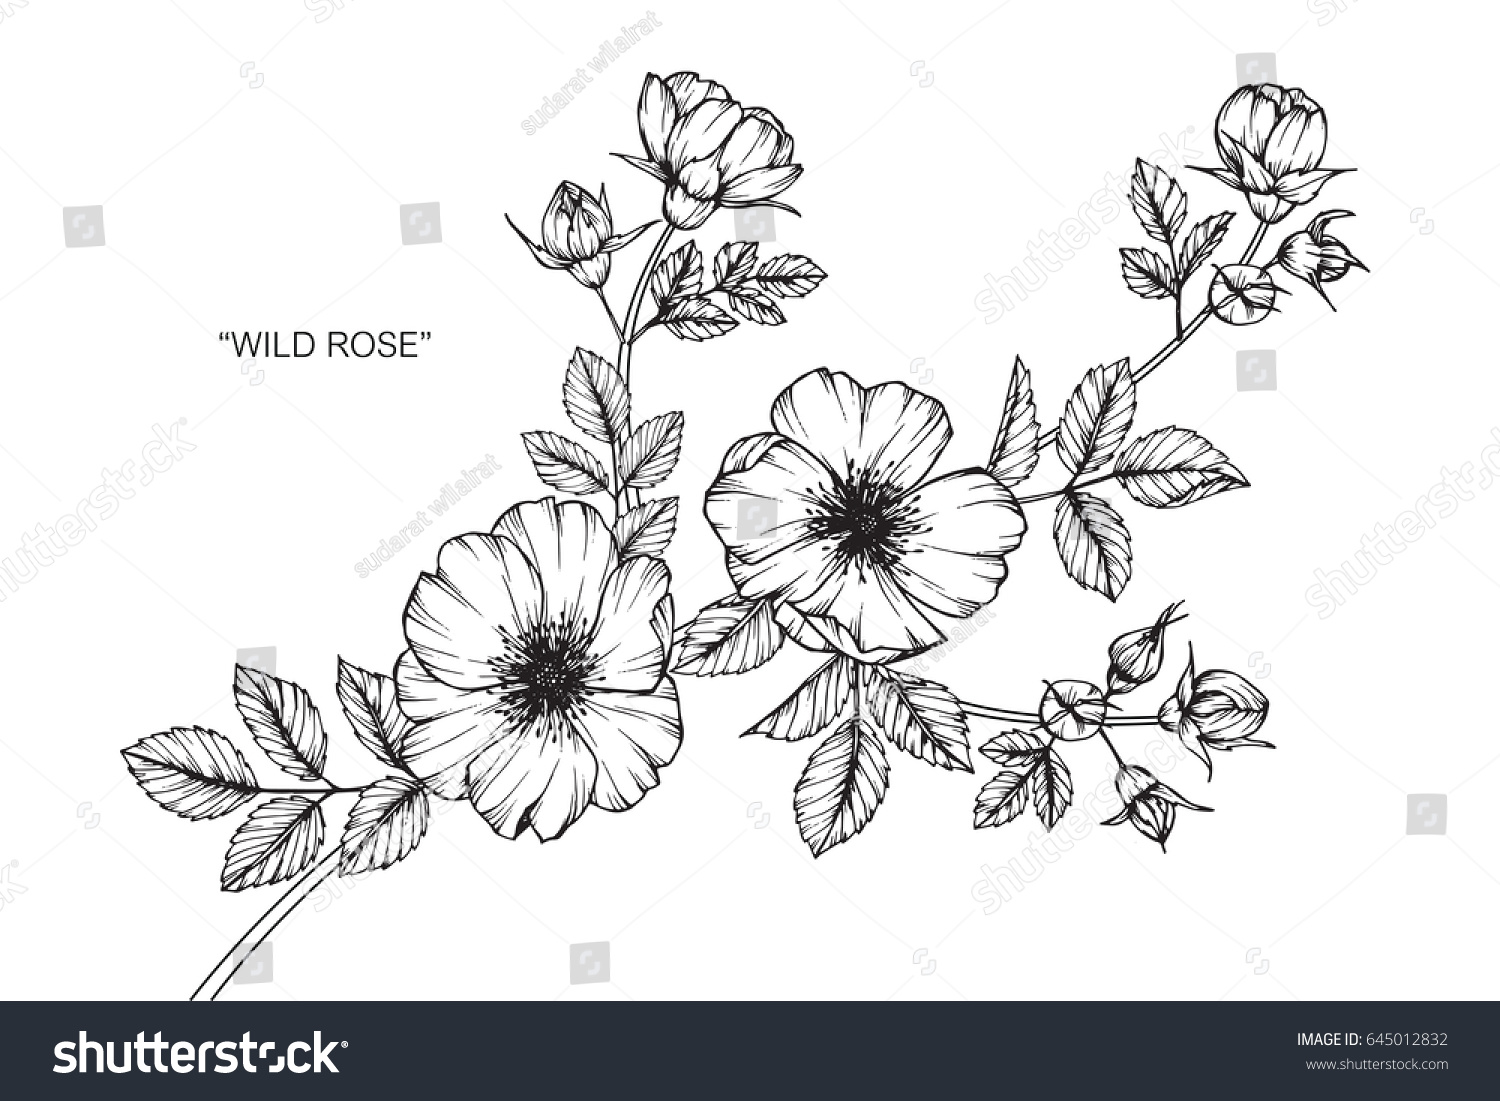 Wild rose flowers drawing and sketch with line-art on white backgrounds. #645012832